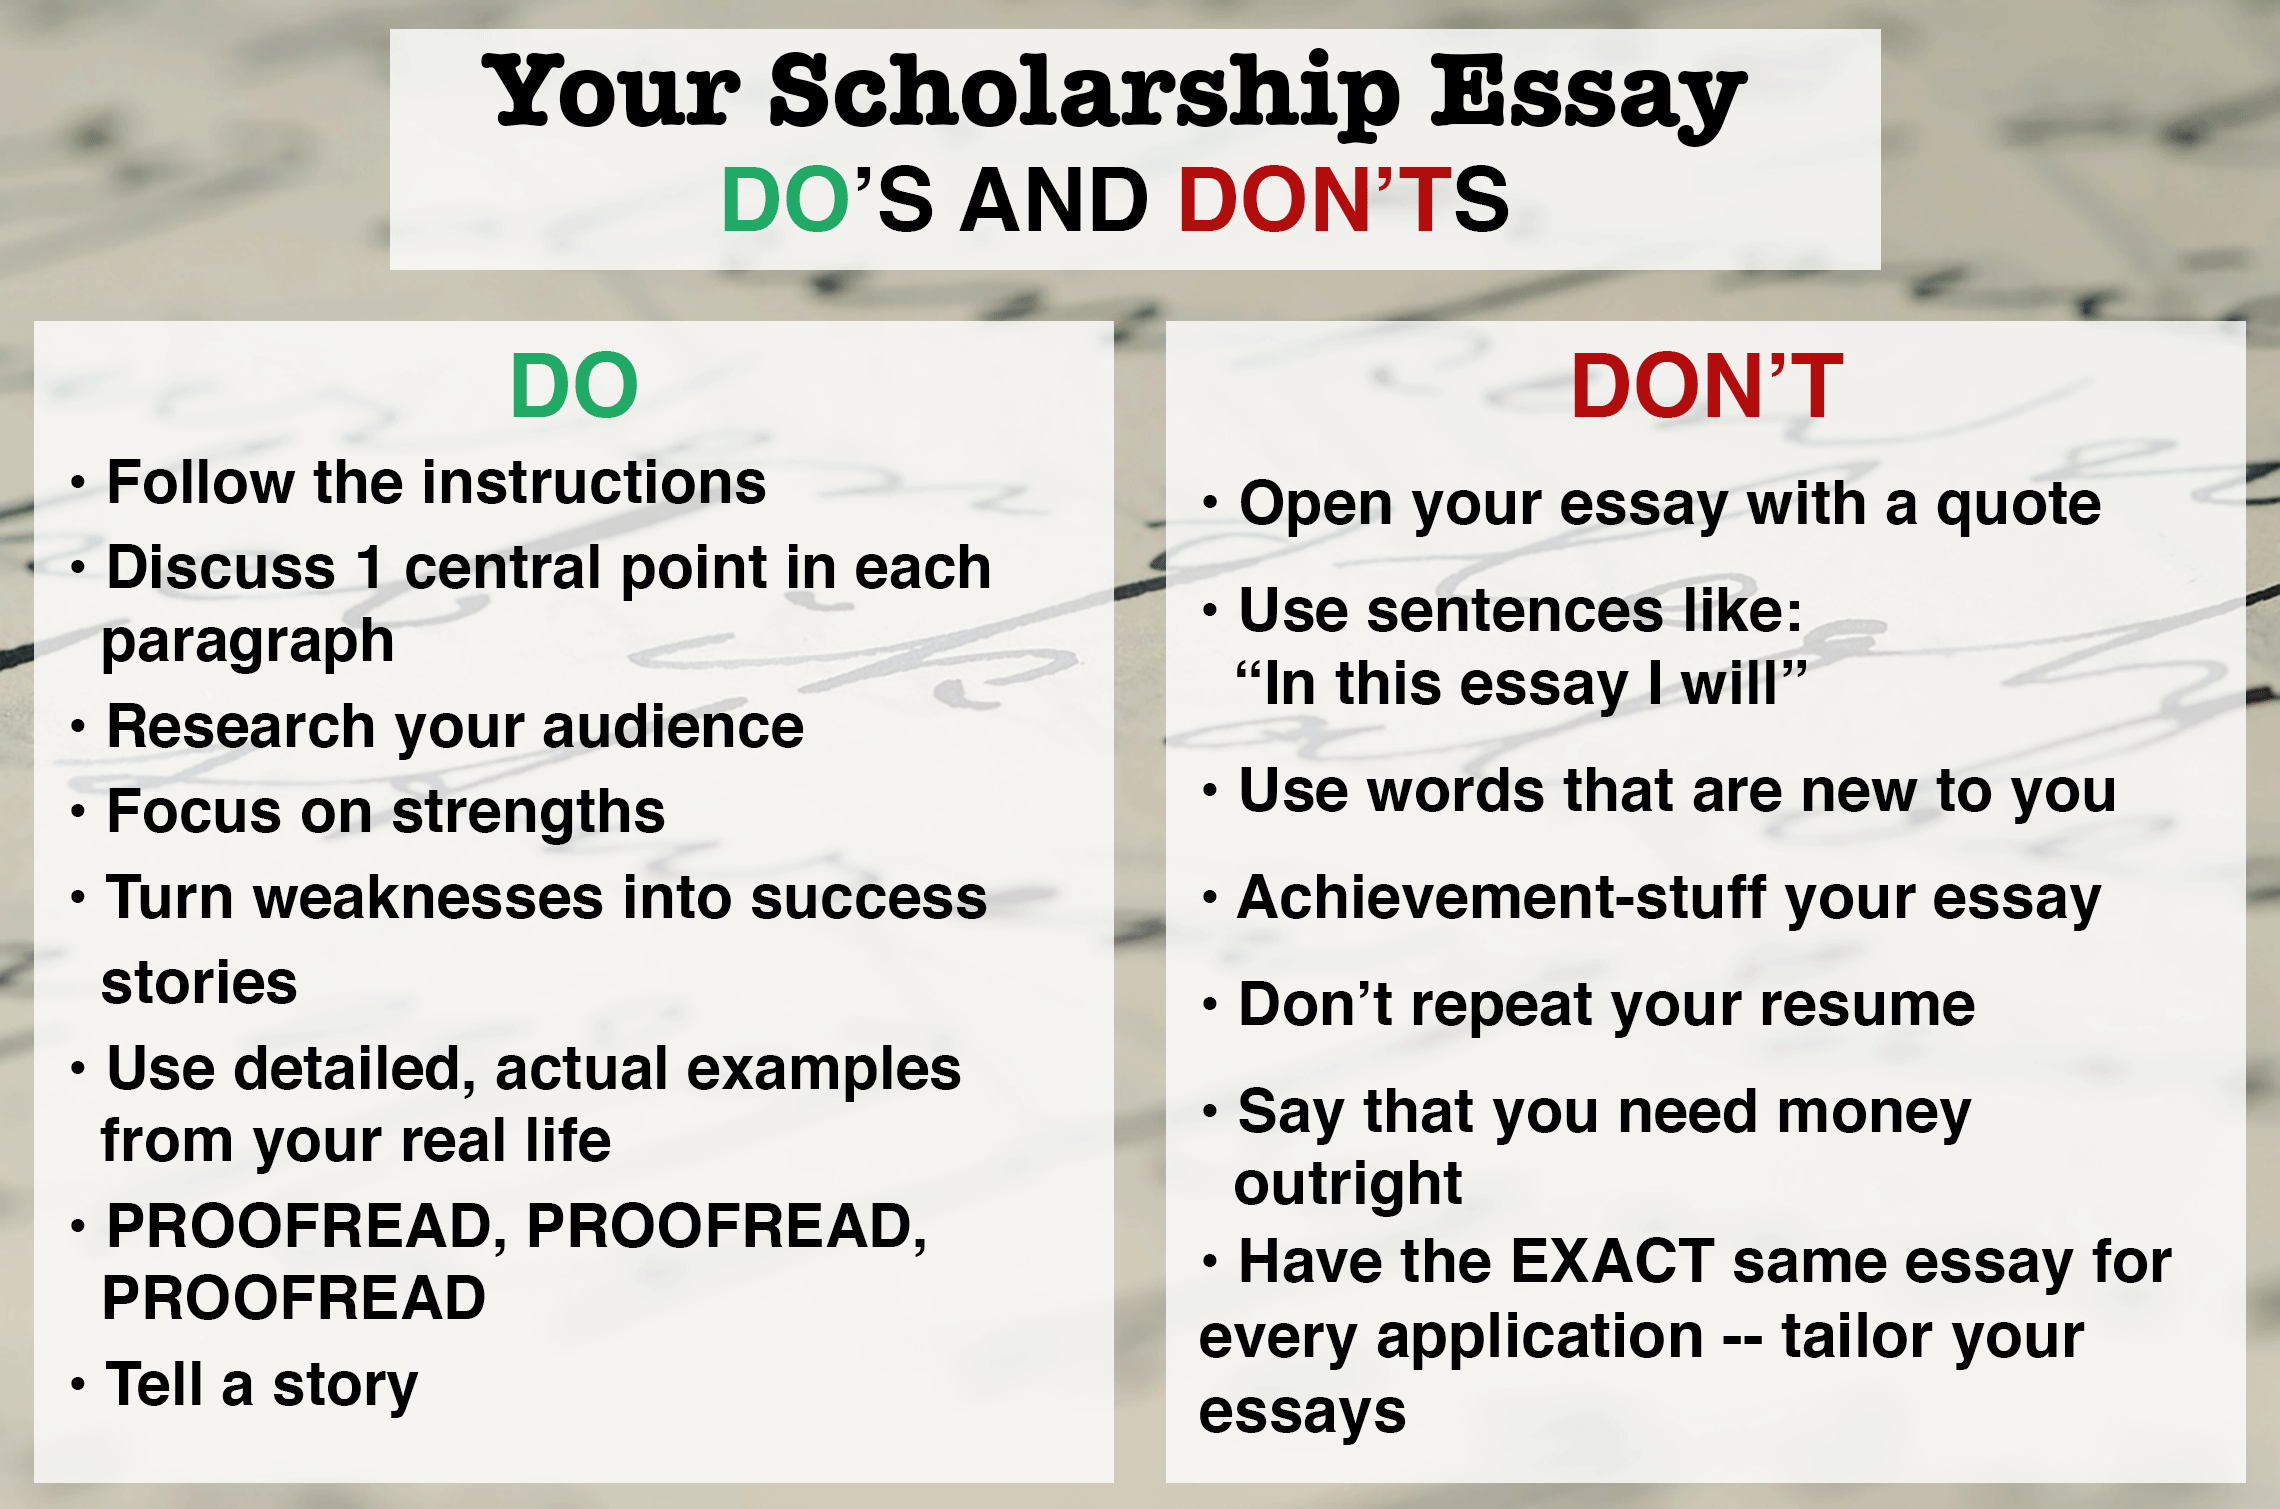 essay scholarships Real scholarship essay examples for most common essay prompts as well as competitive scholarships from gates millennium, jack kent cooke, horatio alger, national.